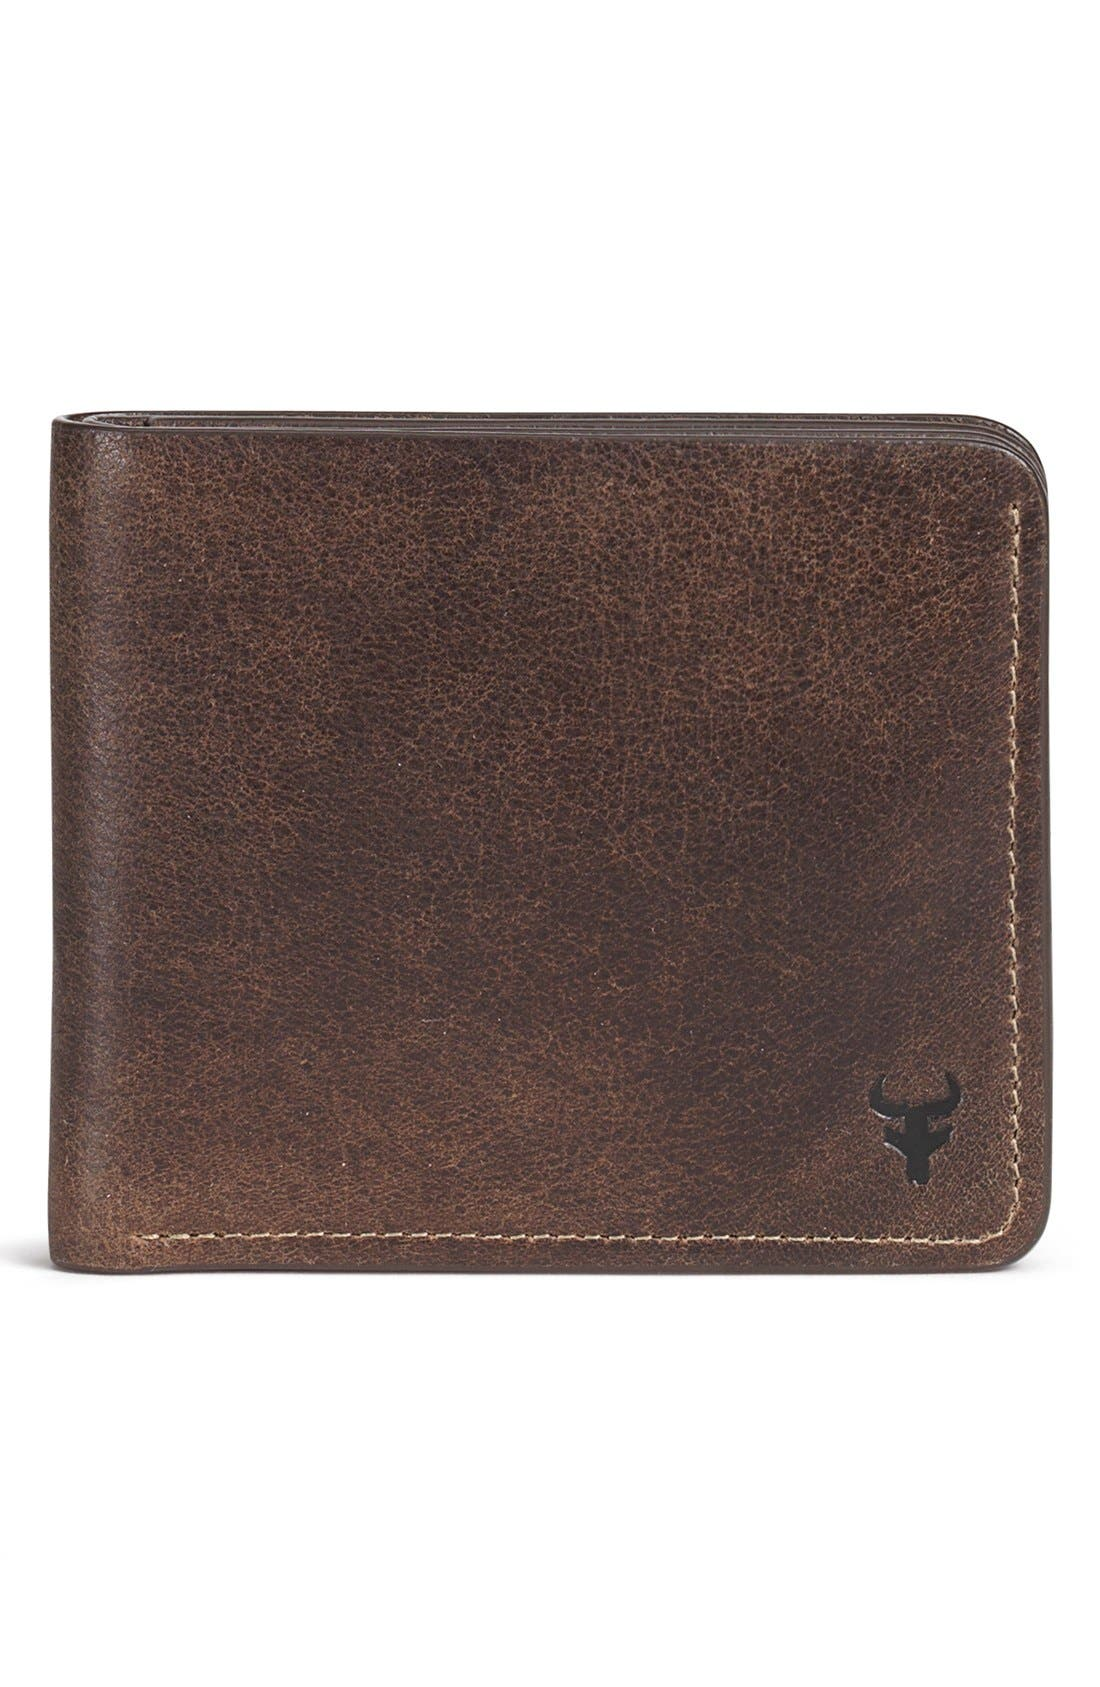 Alternate Image 1 Selected - Trask 'Jackson' Slimfold Bison Leather Wallet